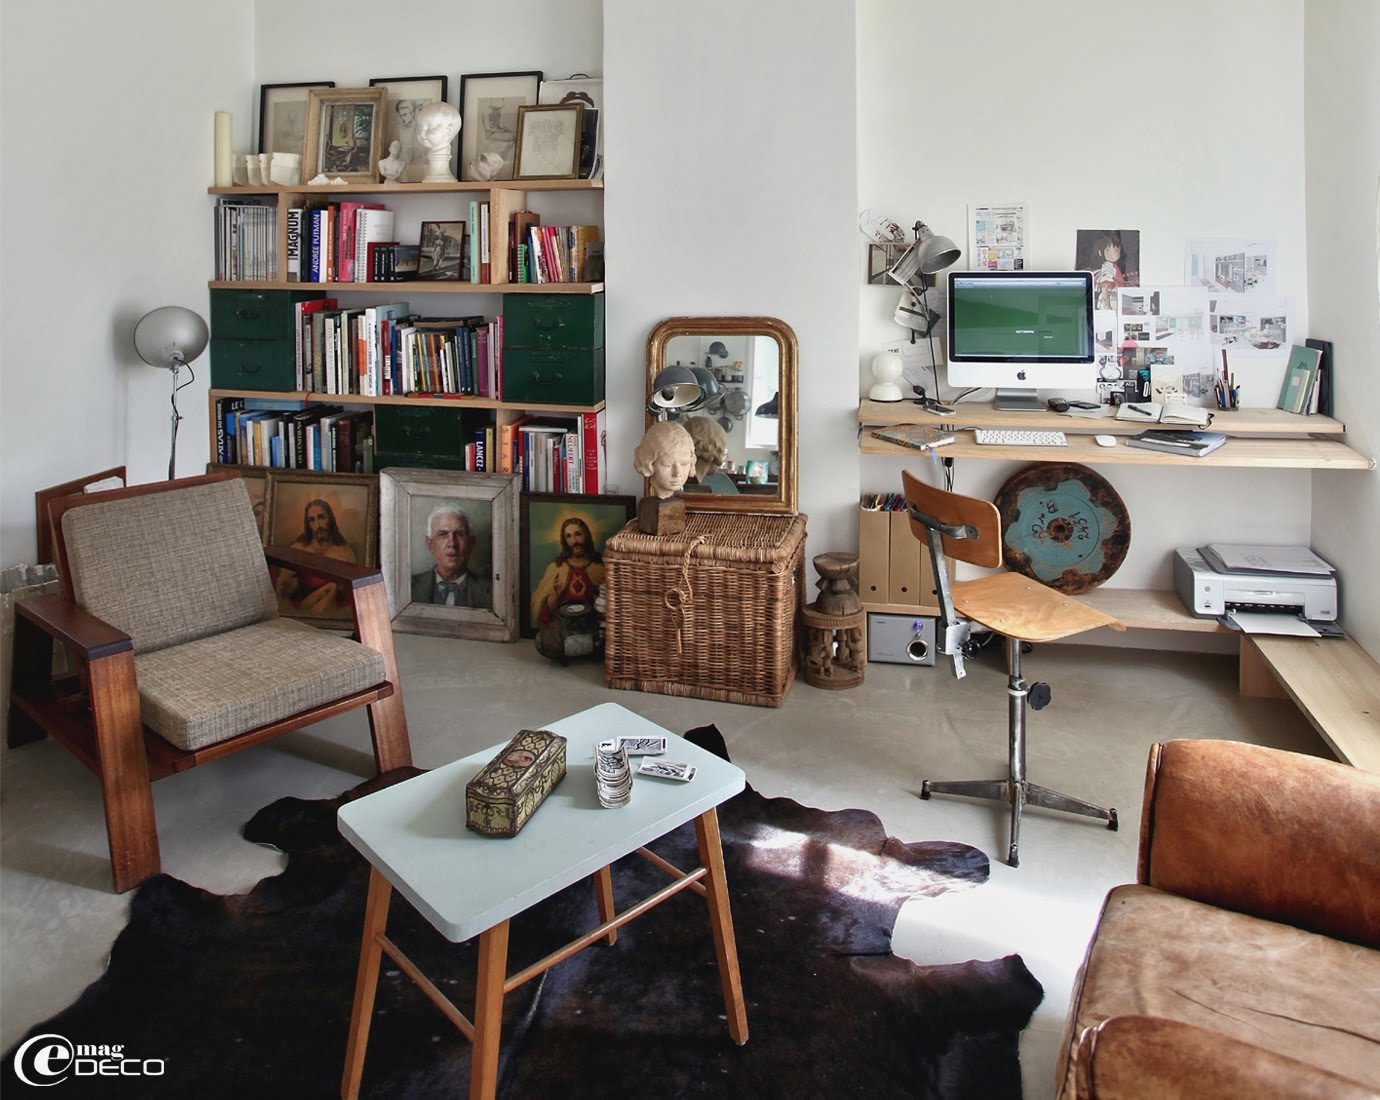 Transparence et esprit brocante e magdeco magazine de for Salon petit appartement